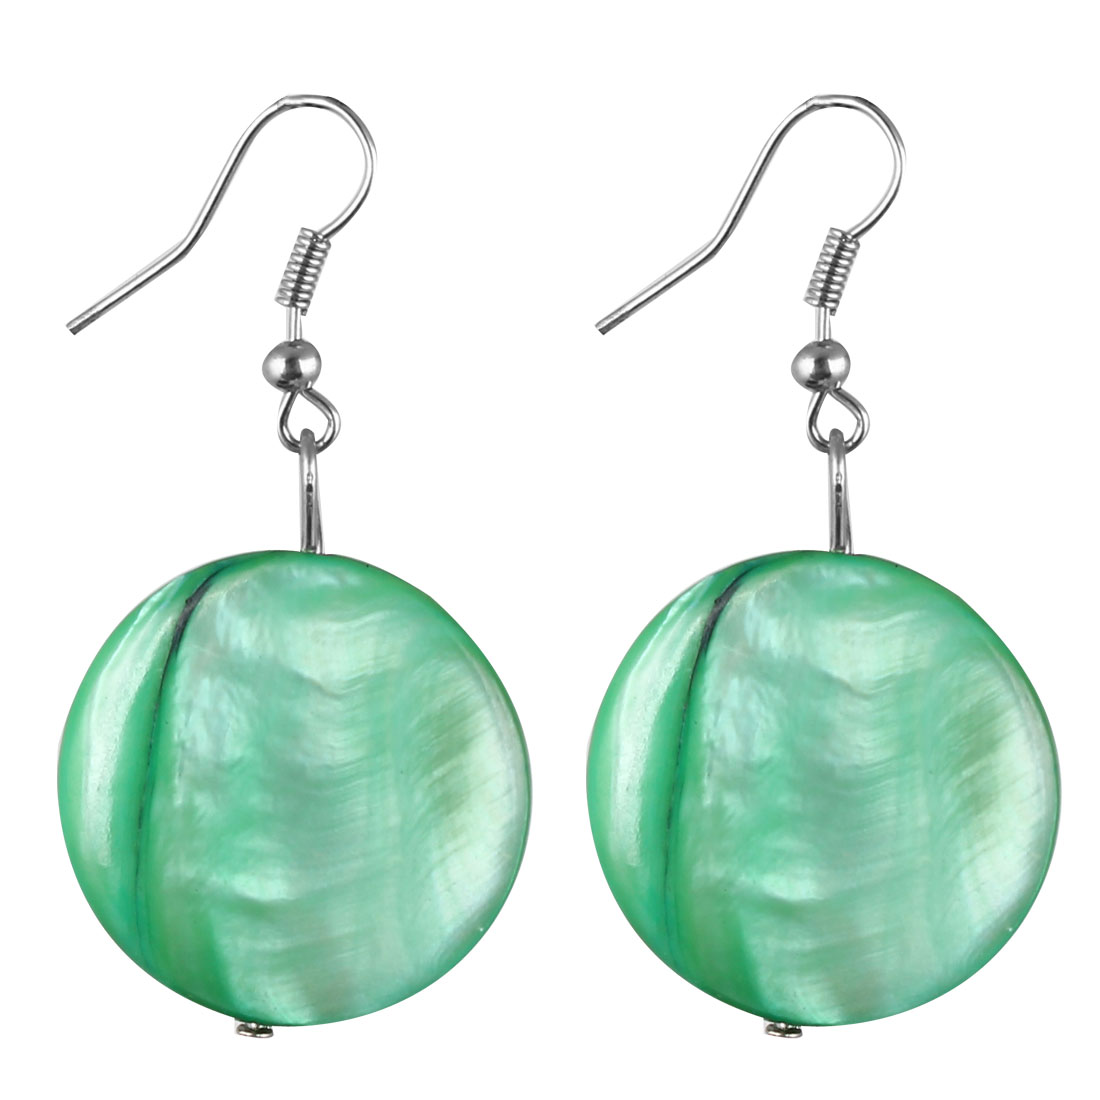 Pair Green Round Sea Shell Pendant Dangling Fish Hook Ear Drops Earrings Eardrops